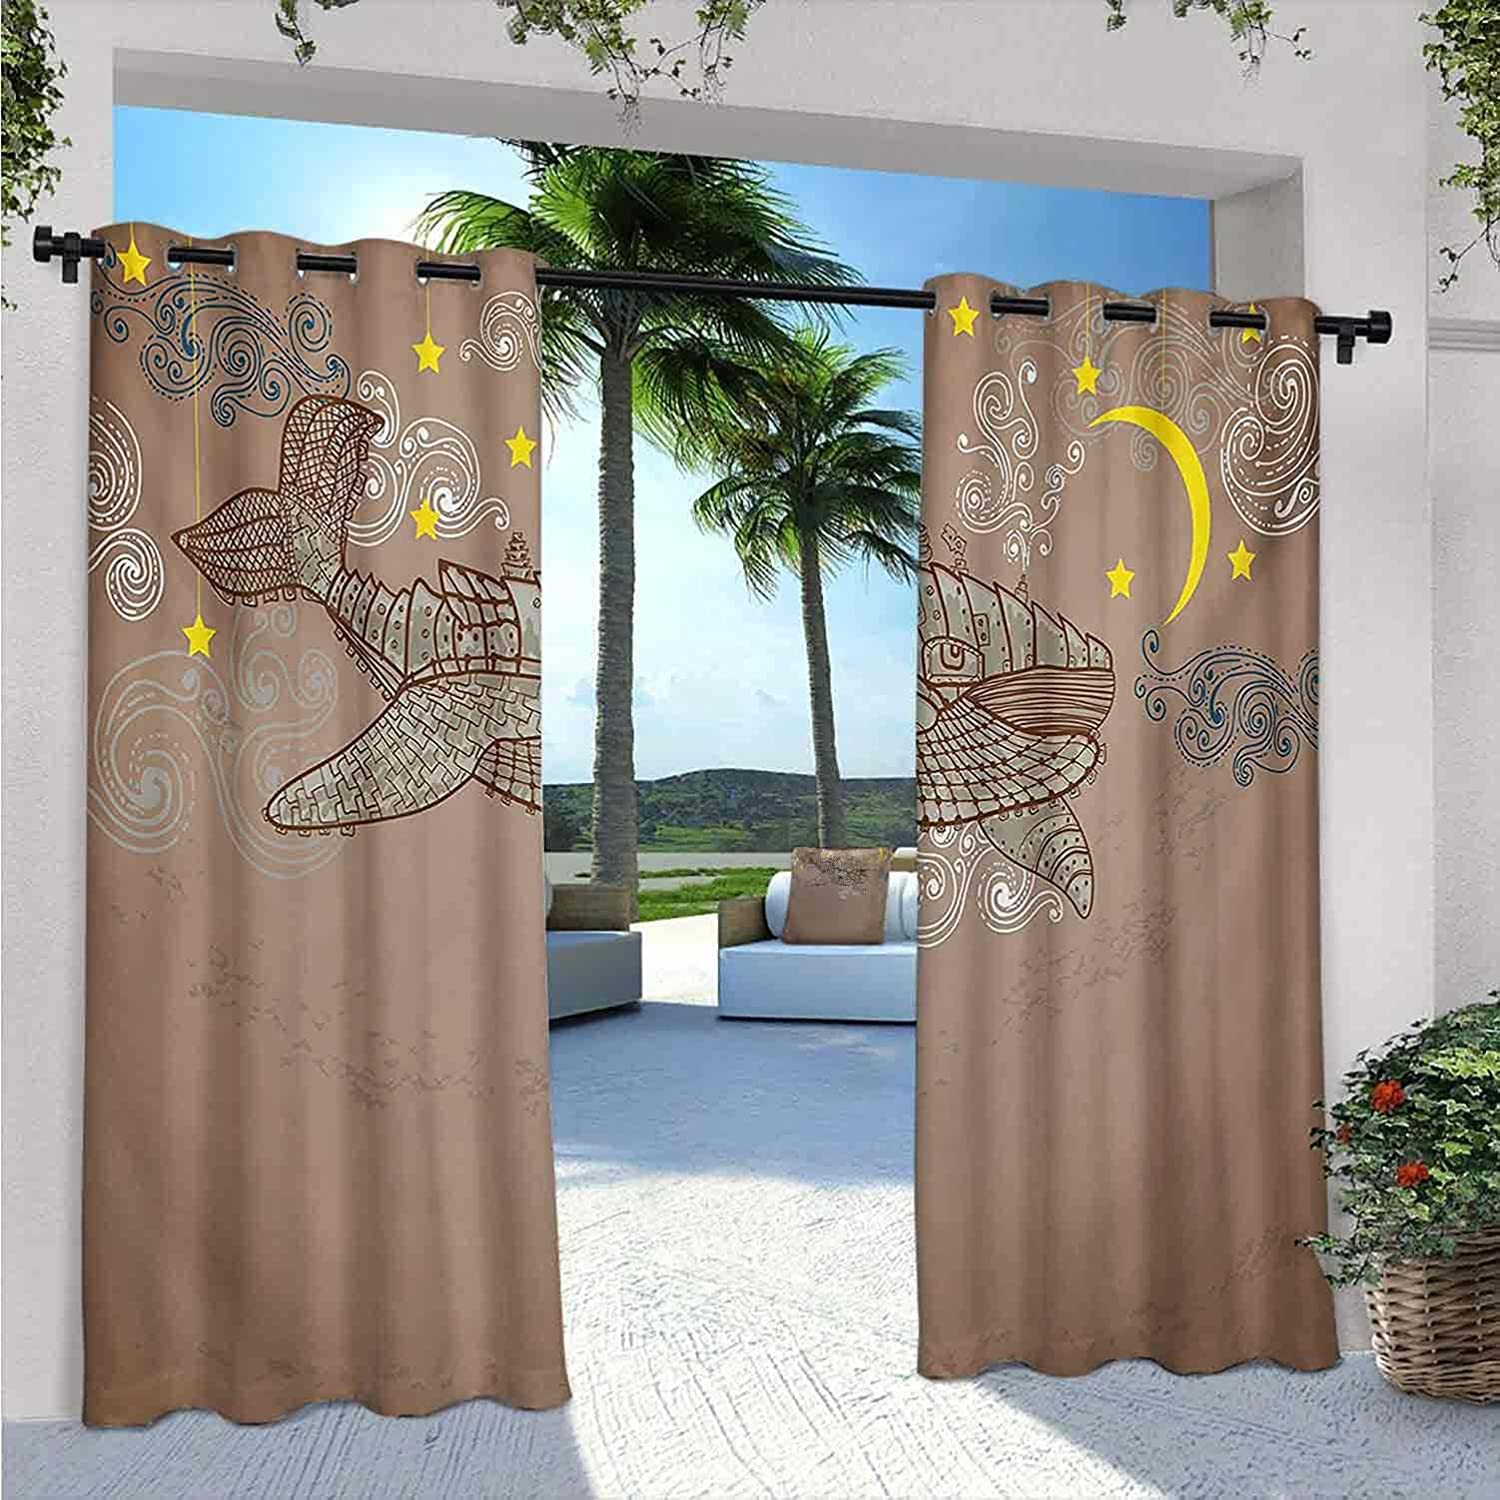 Whale Outdoor Curtains for Waterproof Patio Steampunk in In stock Year-end gift